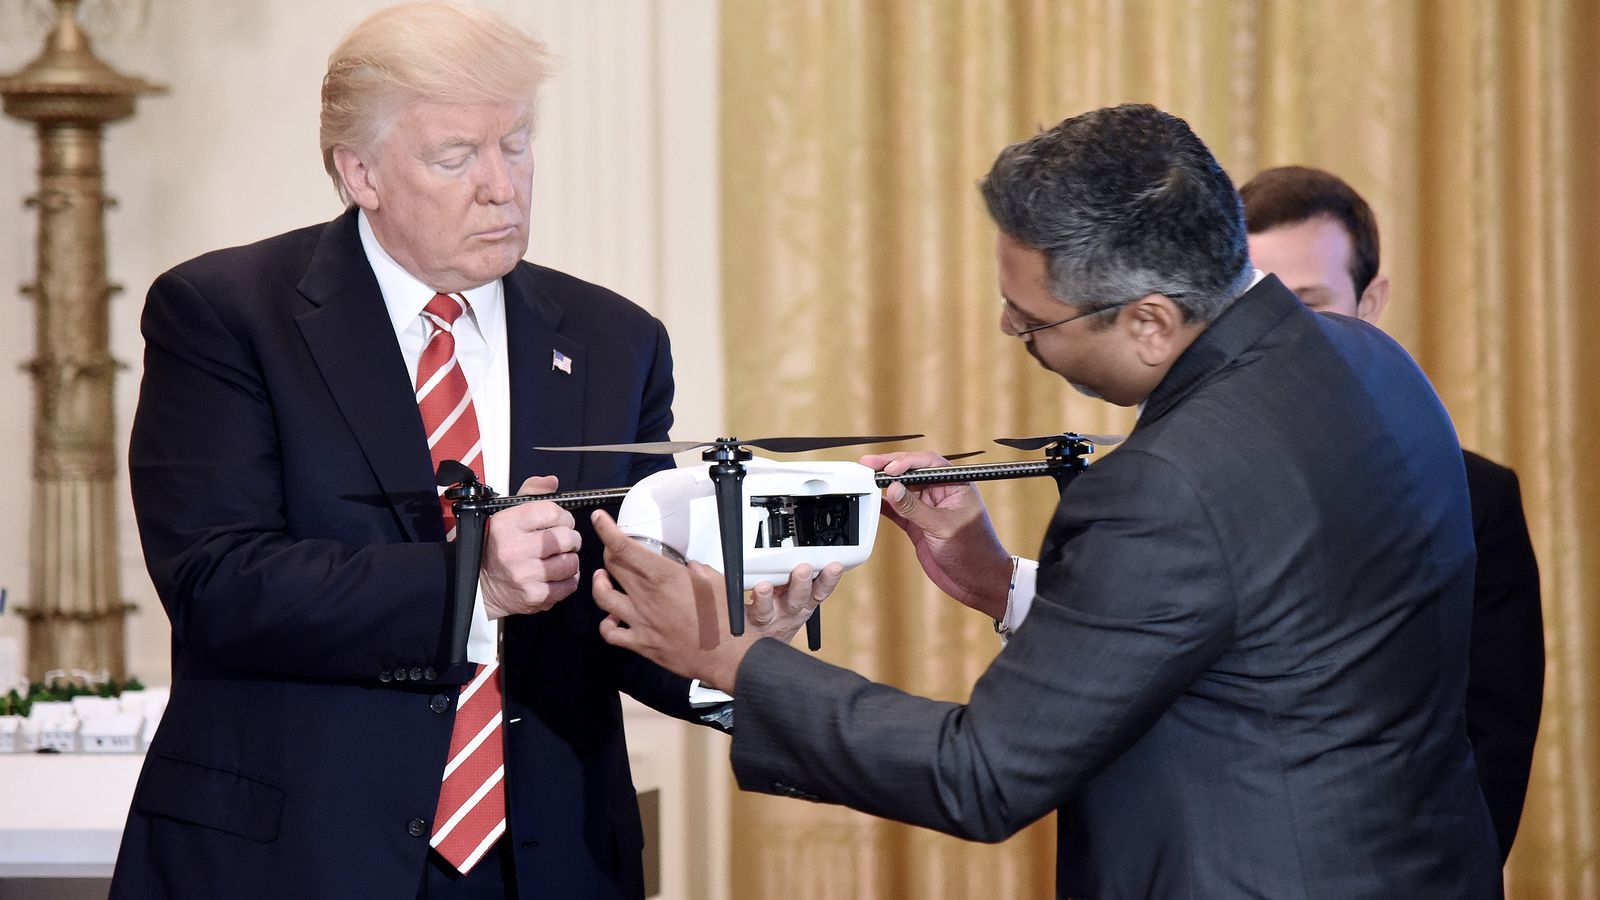 Wireless and drone execs praised President Trump as he pledged to cut down regulations